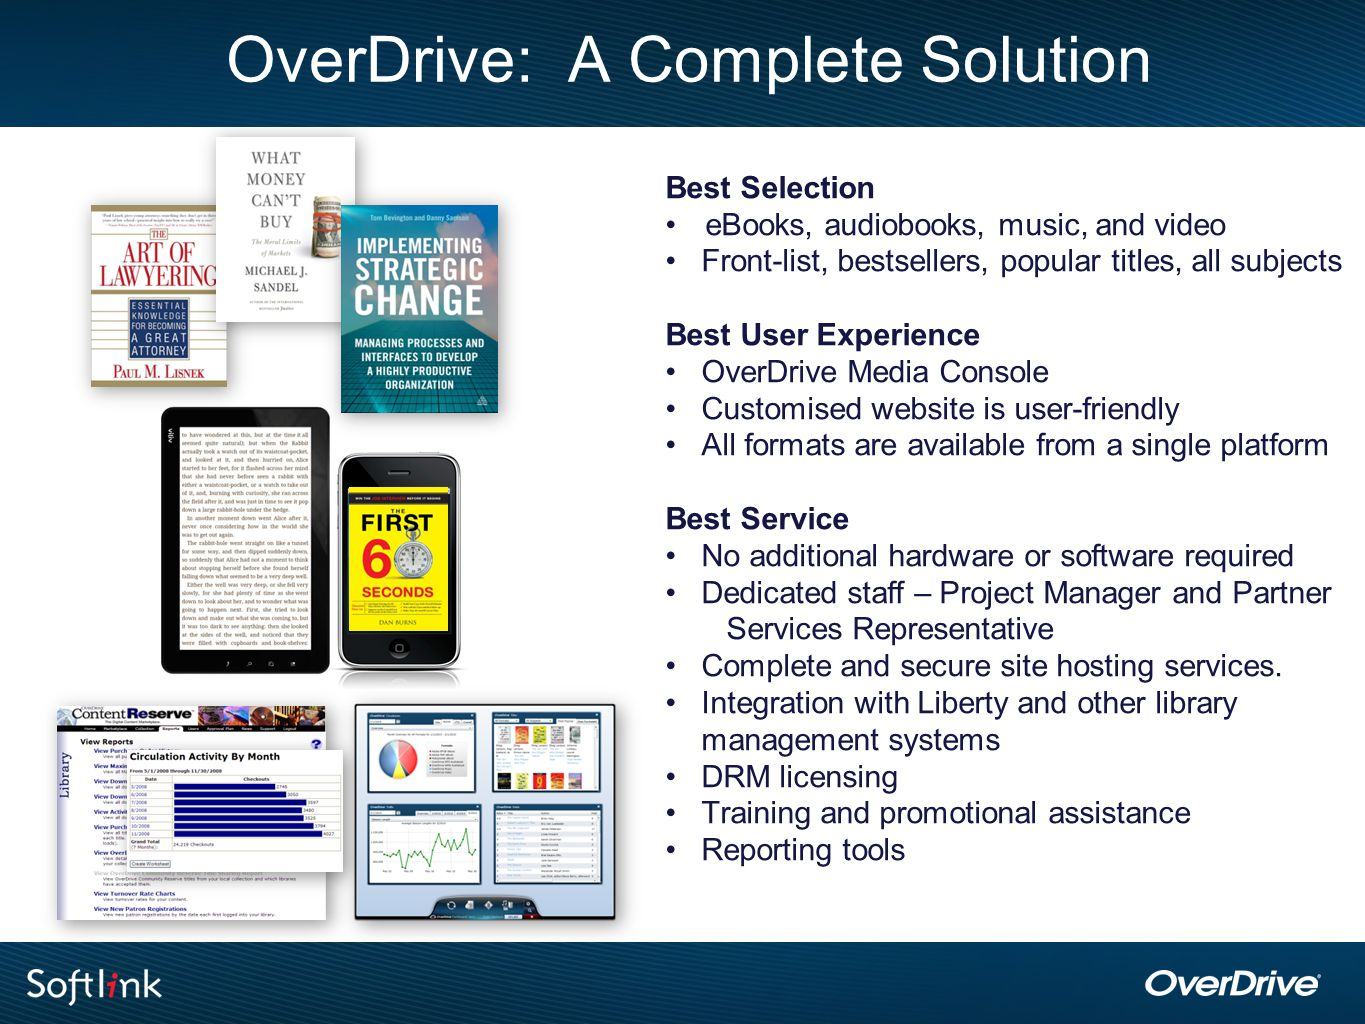 OverDrive: A Complete Solution Best Selection eBooks, audiobooks, music, and video Front-list, bestsellers, popular titles, all subjects Best User Exp